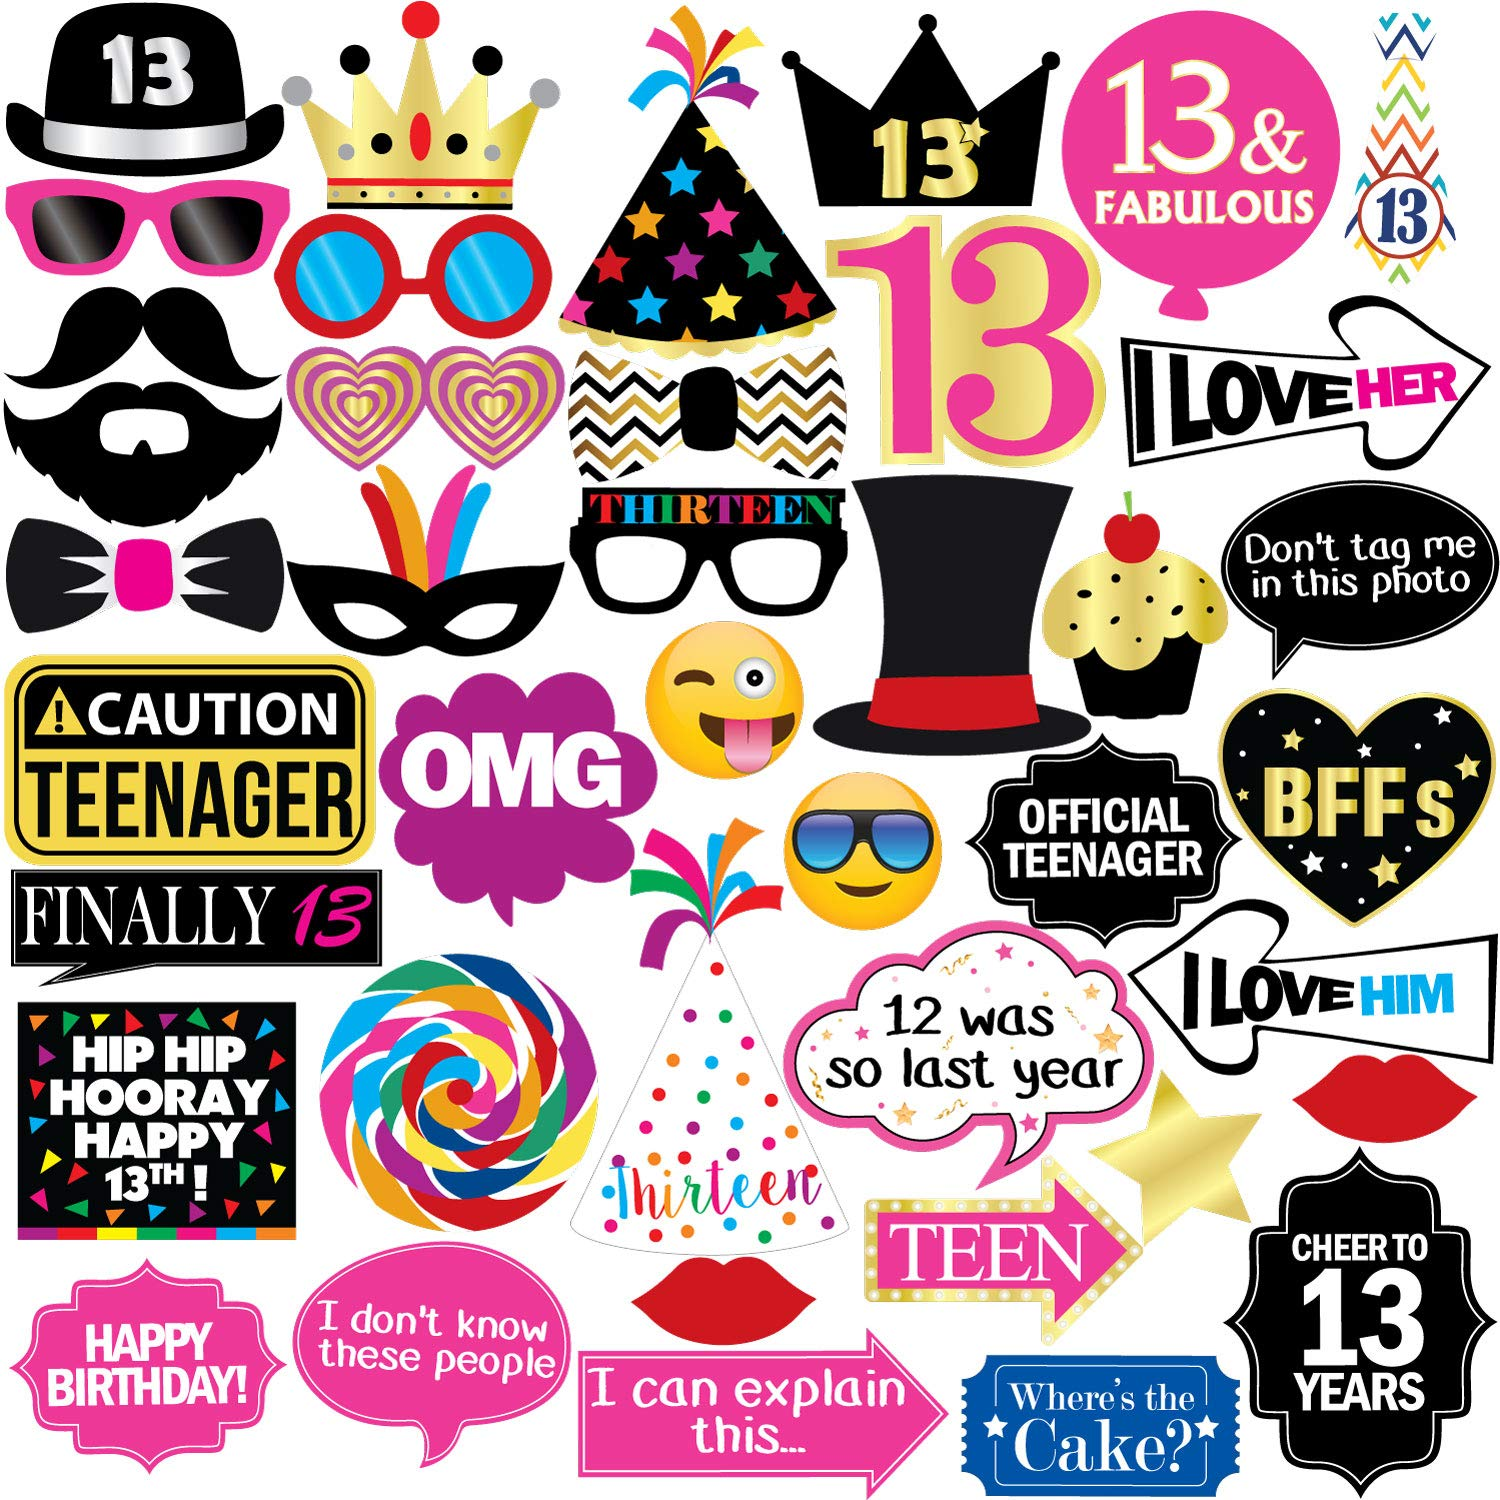 13th Birthday Photo Booth Party Props - 40 Pieces - Funny Official Teenager Birthday Party Supplies, Decorations and Favors